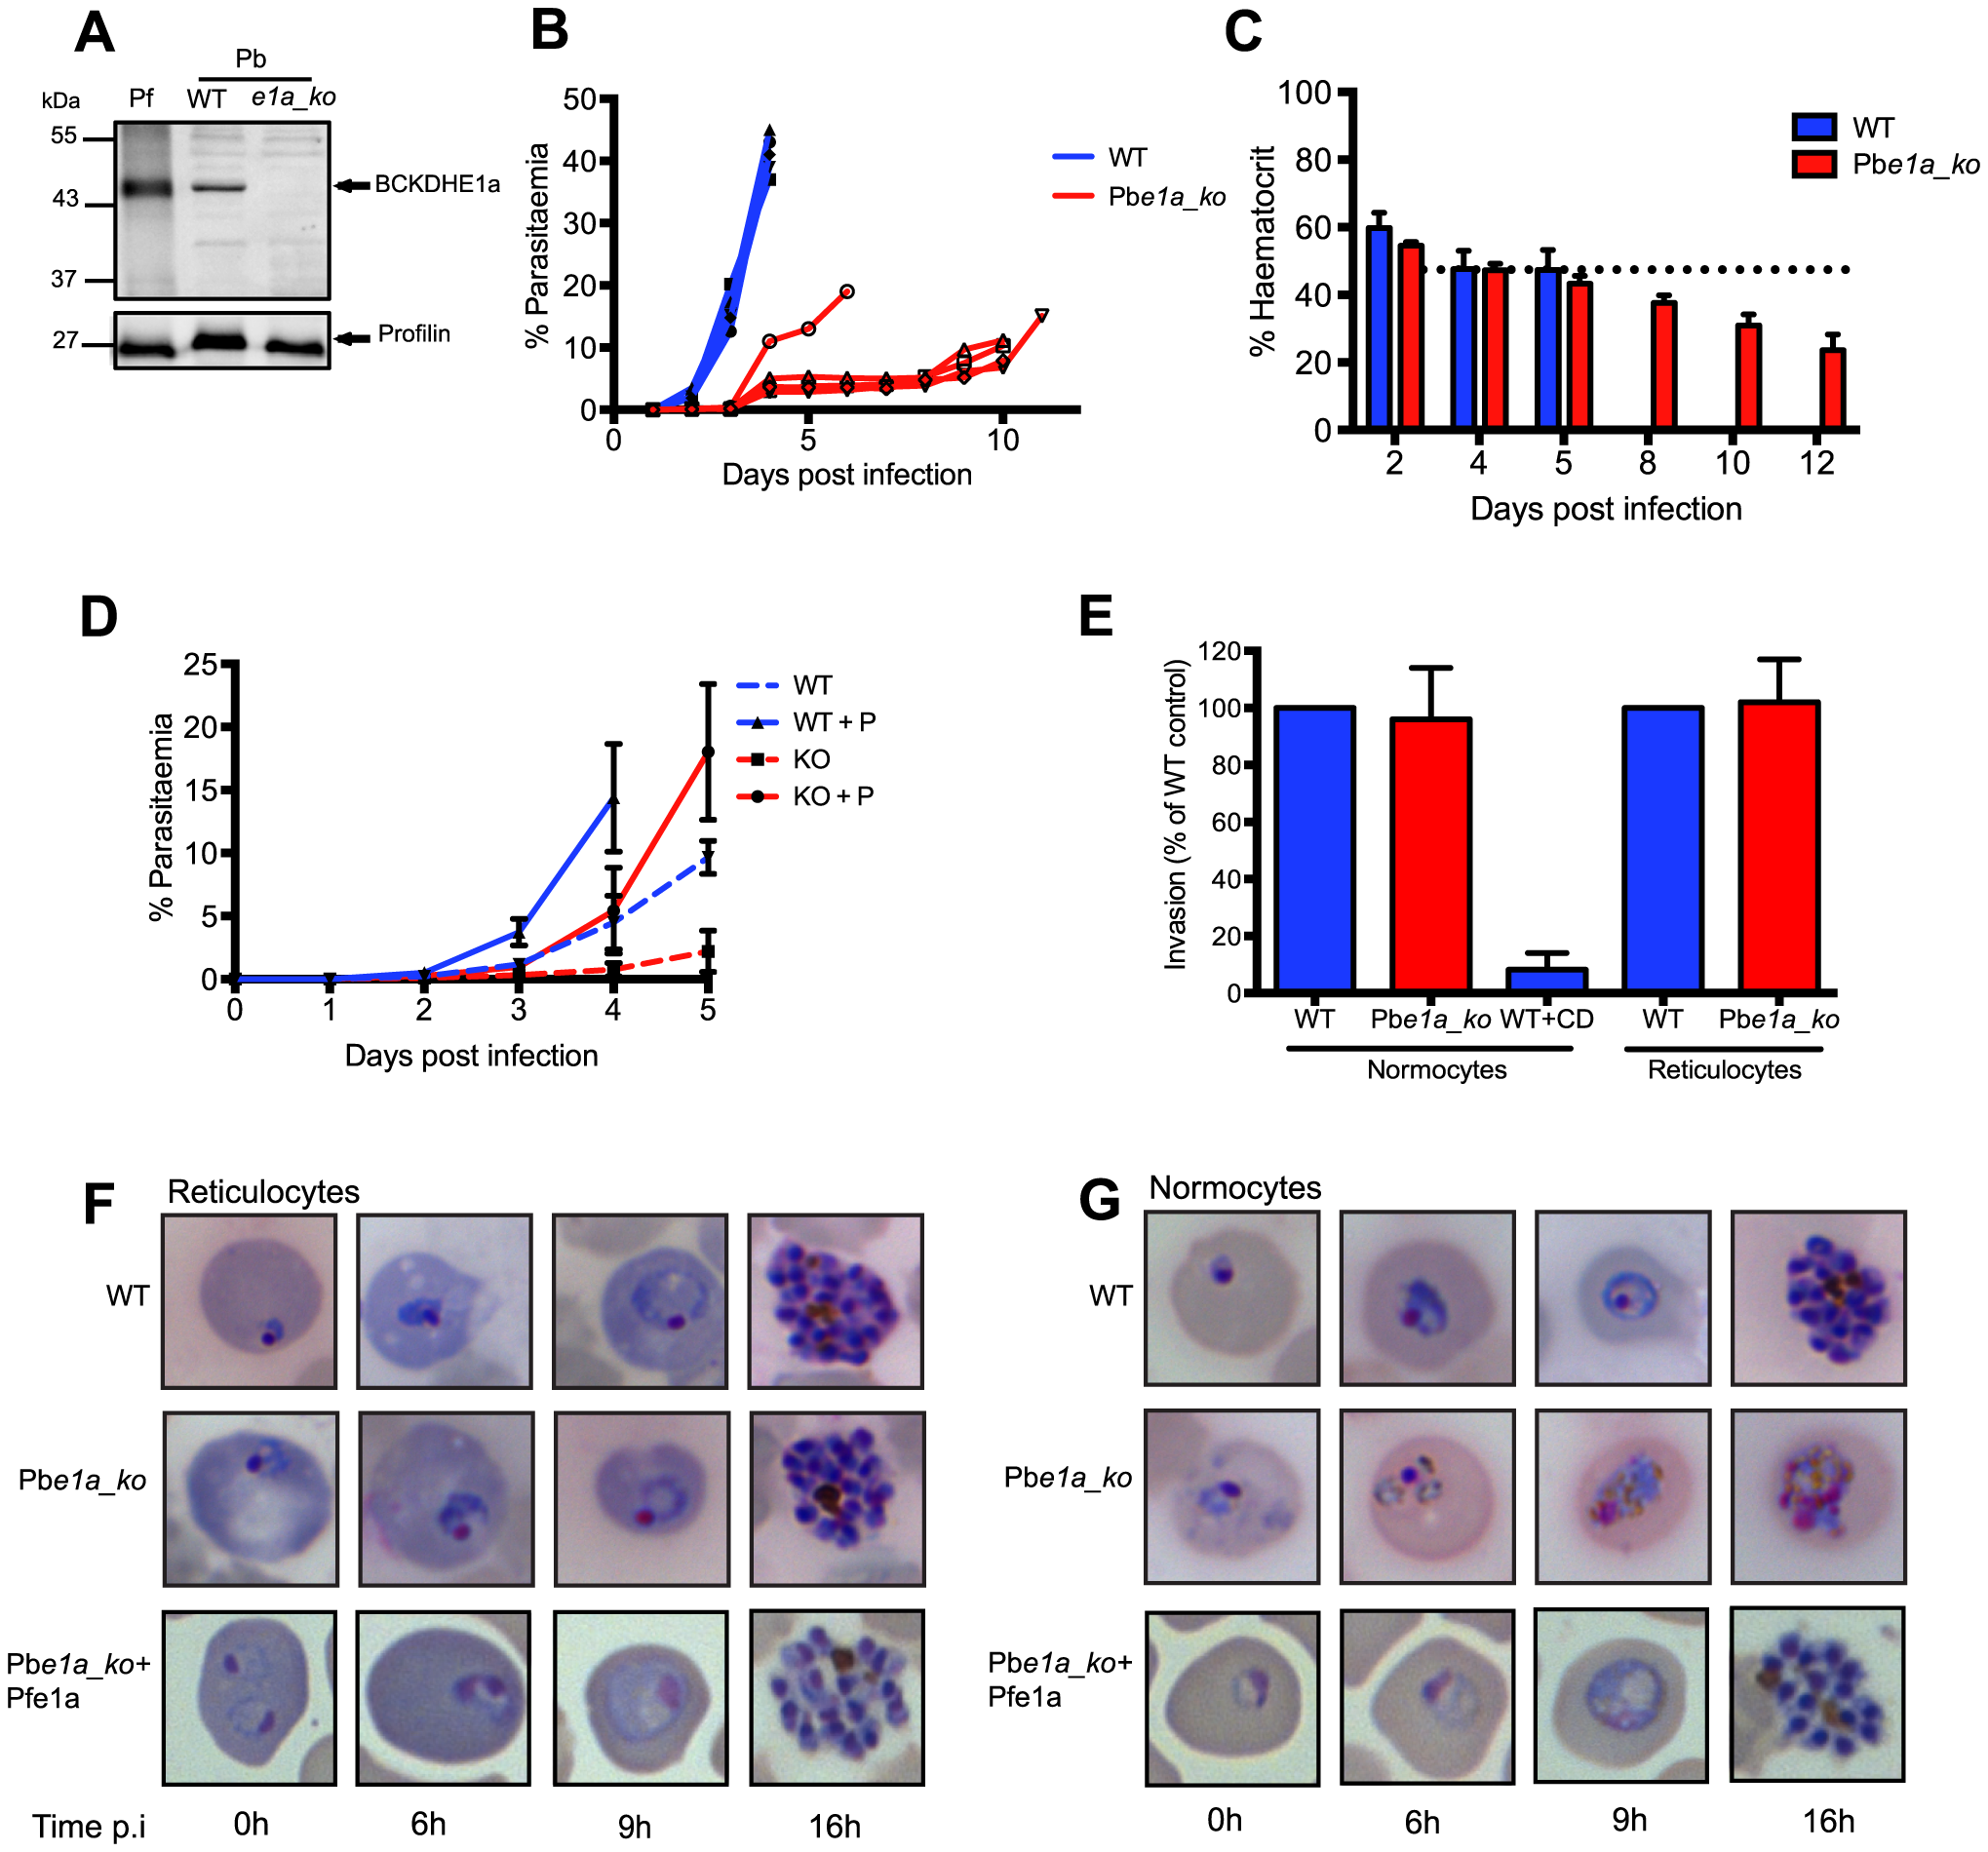 BCKDH is required for growth of <i>Plasmodium berghei</i> in mature RBCs.